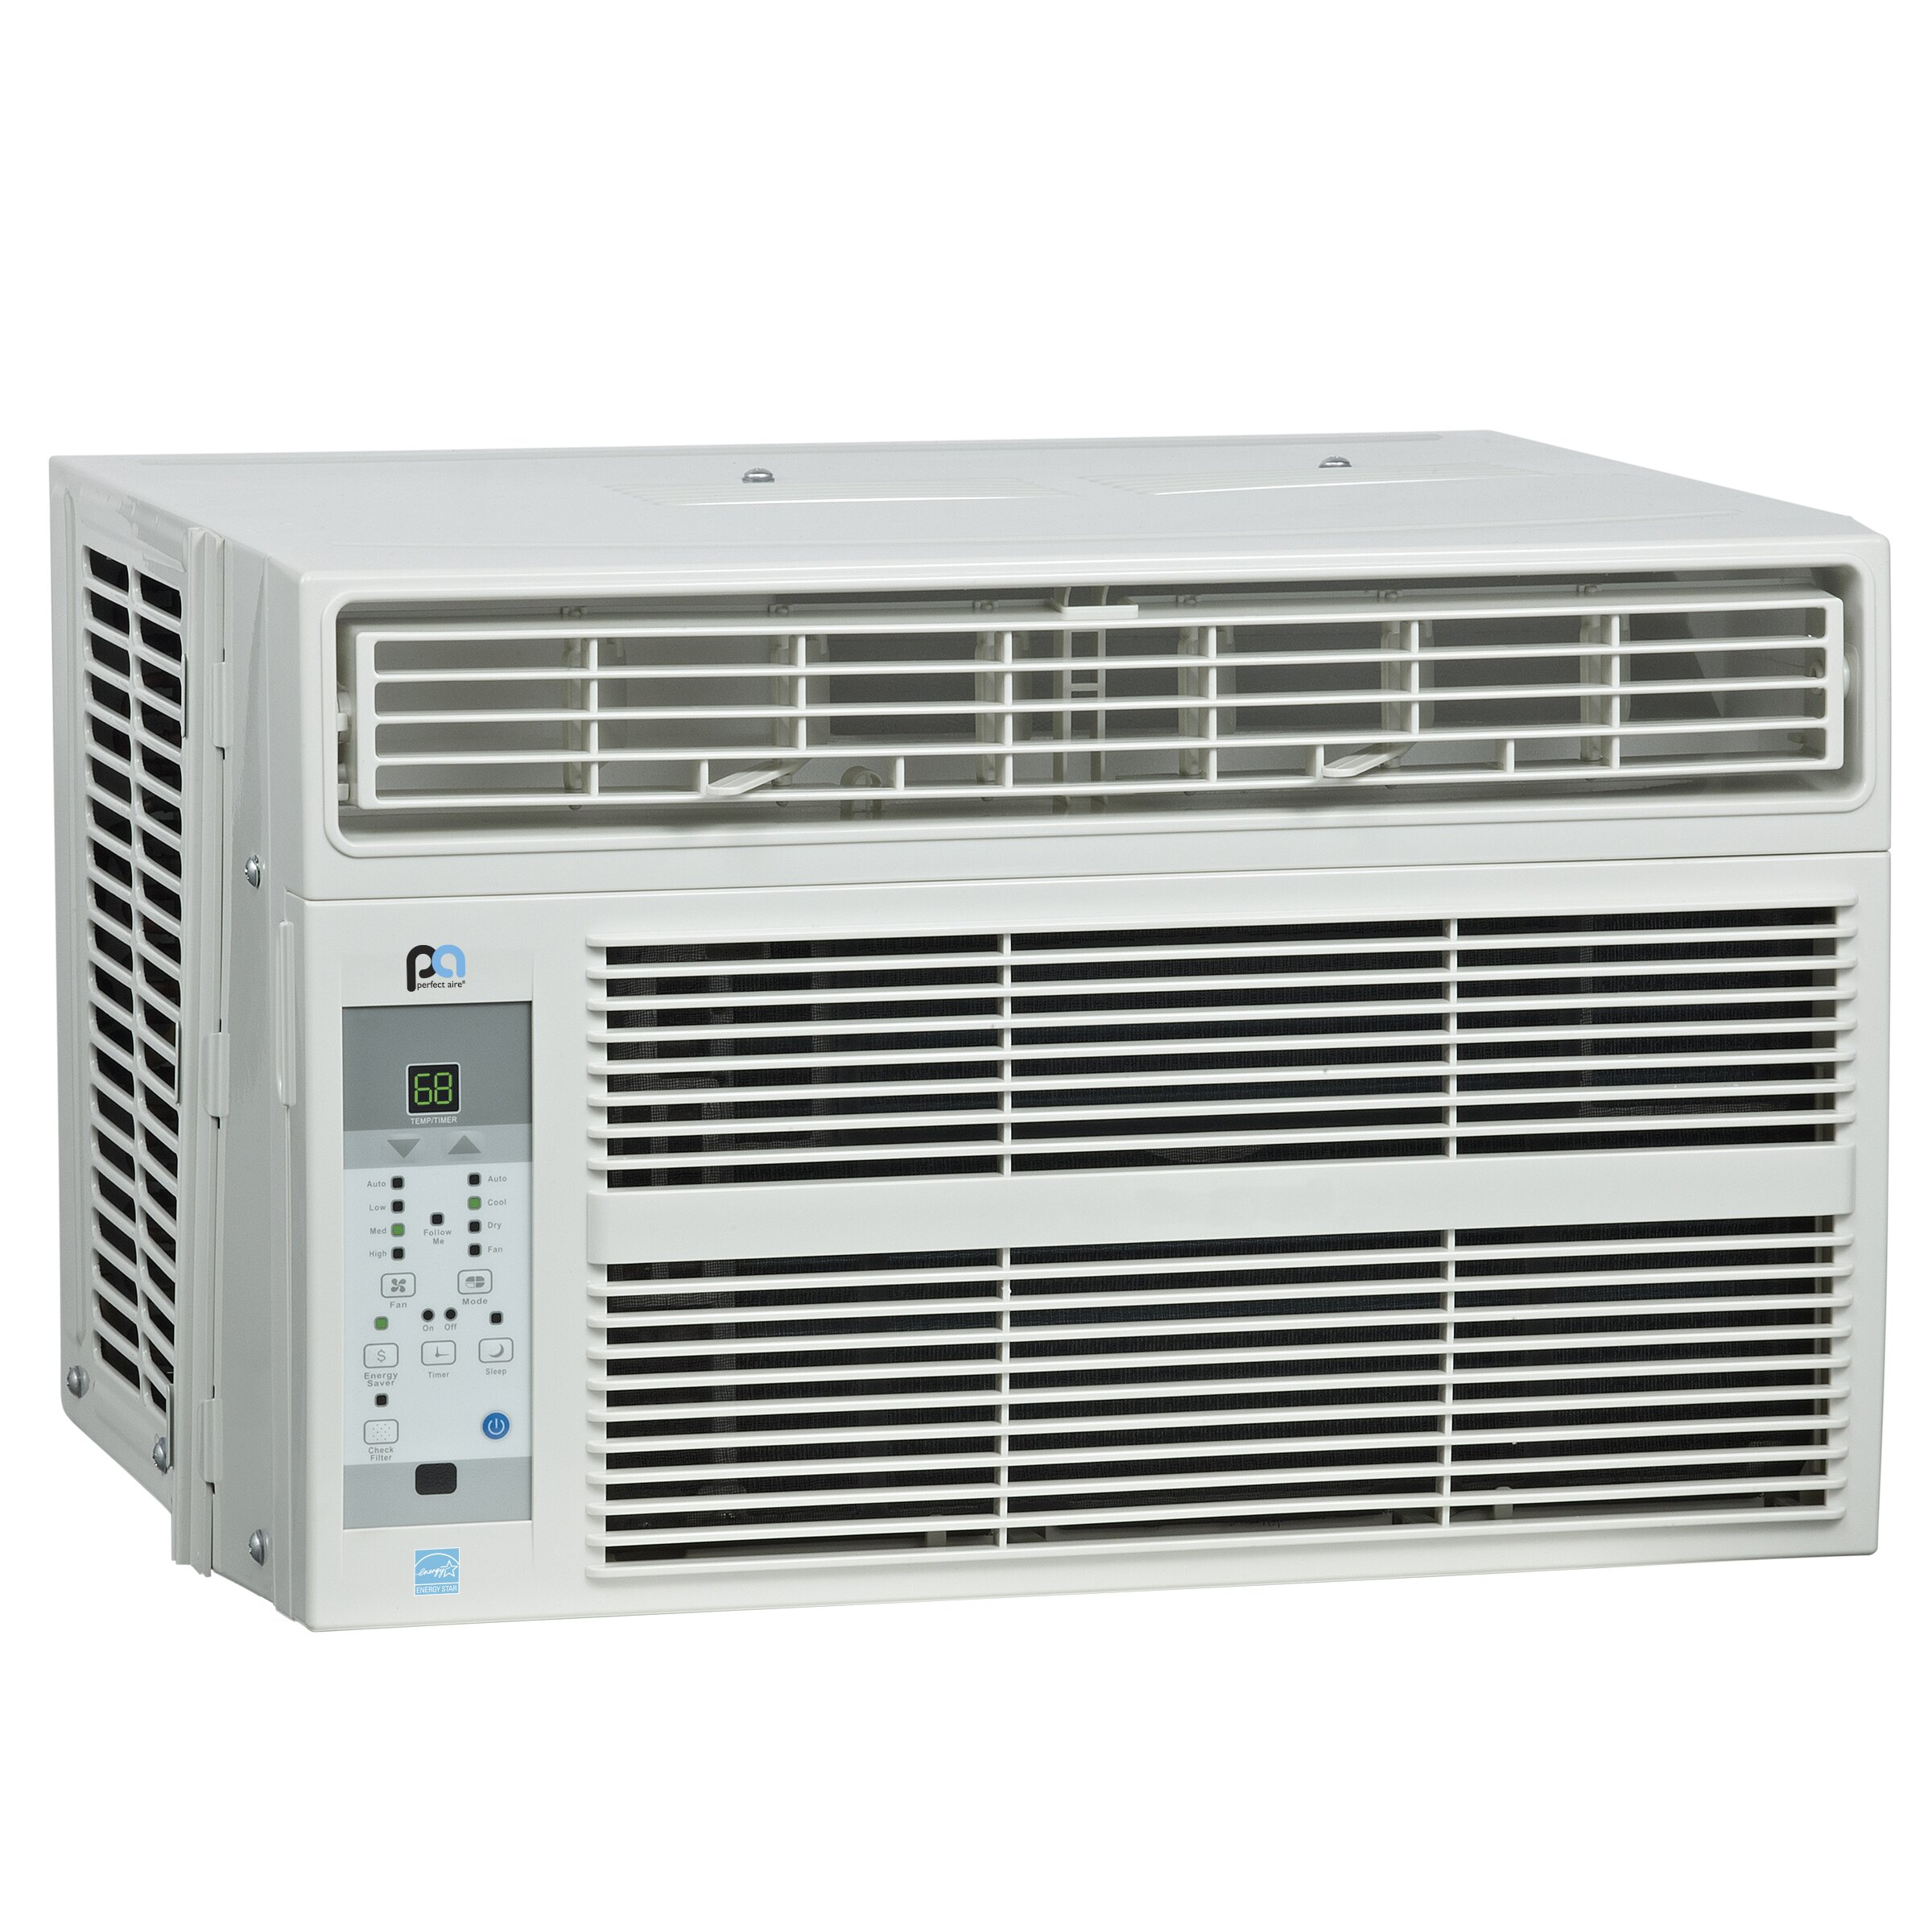 8000 BTU Energy Star Window Air Conditioner with Remote by PerfectAire #526979